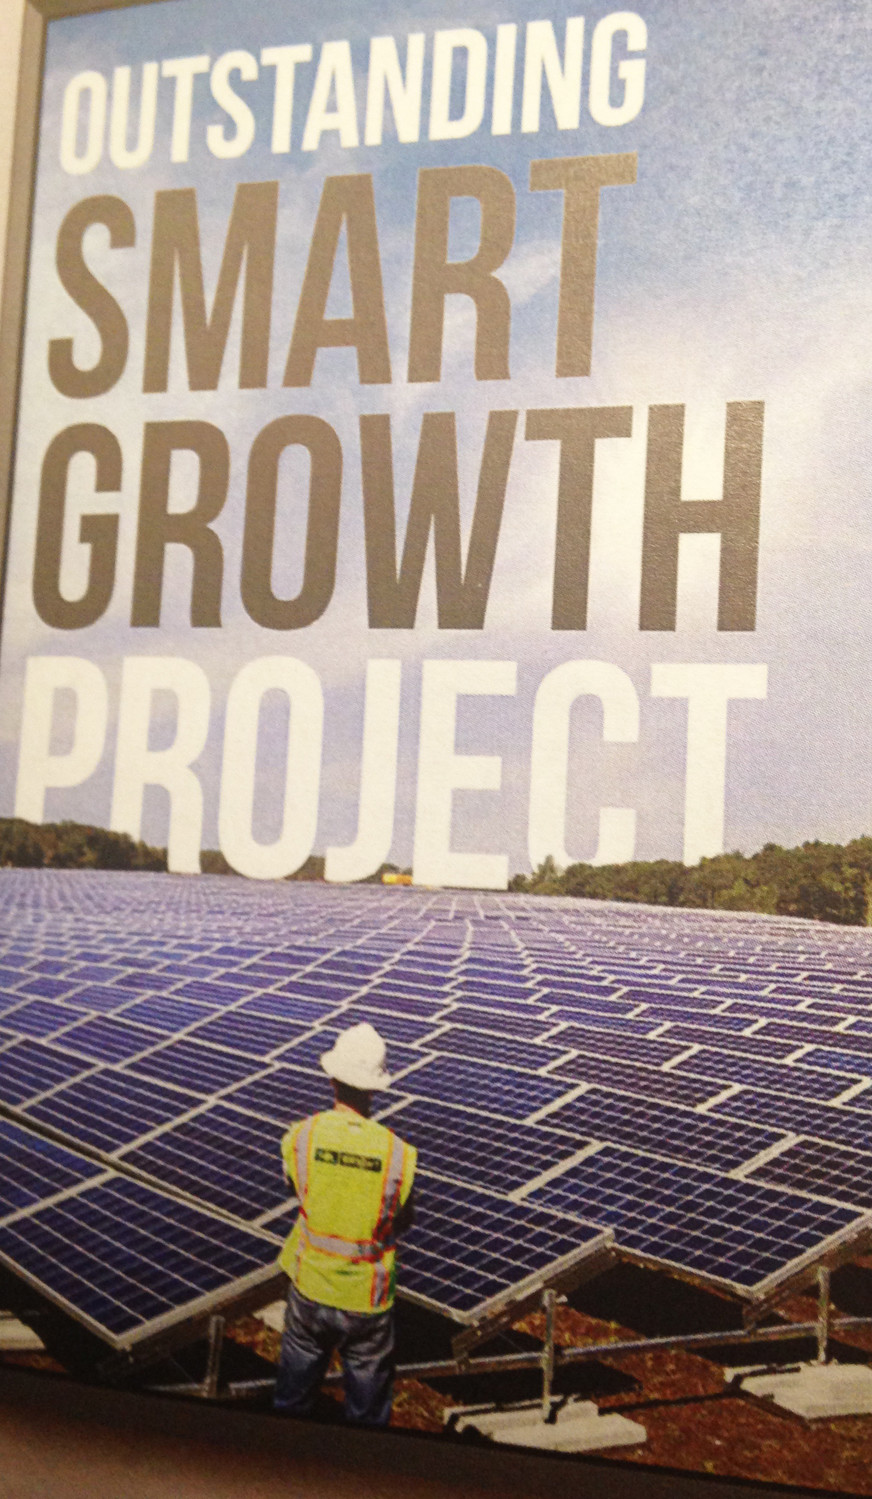 The Forbes Street Solar Project in East Providence, built on a former landfill, is now the largest solar farm in the state. The project received the 2018 award for outstanding smart growth project from Grow Smart RI.